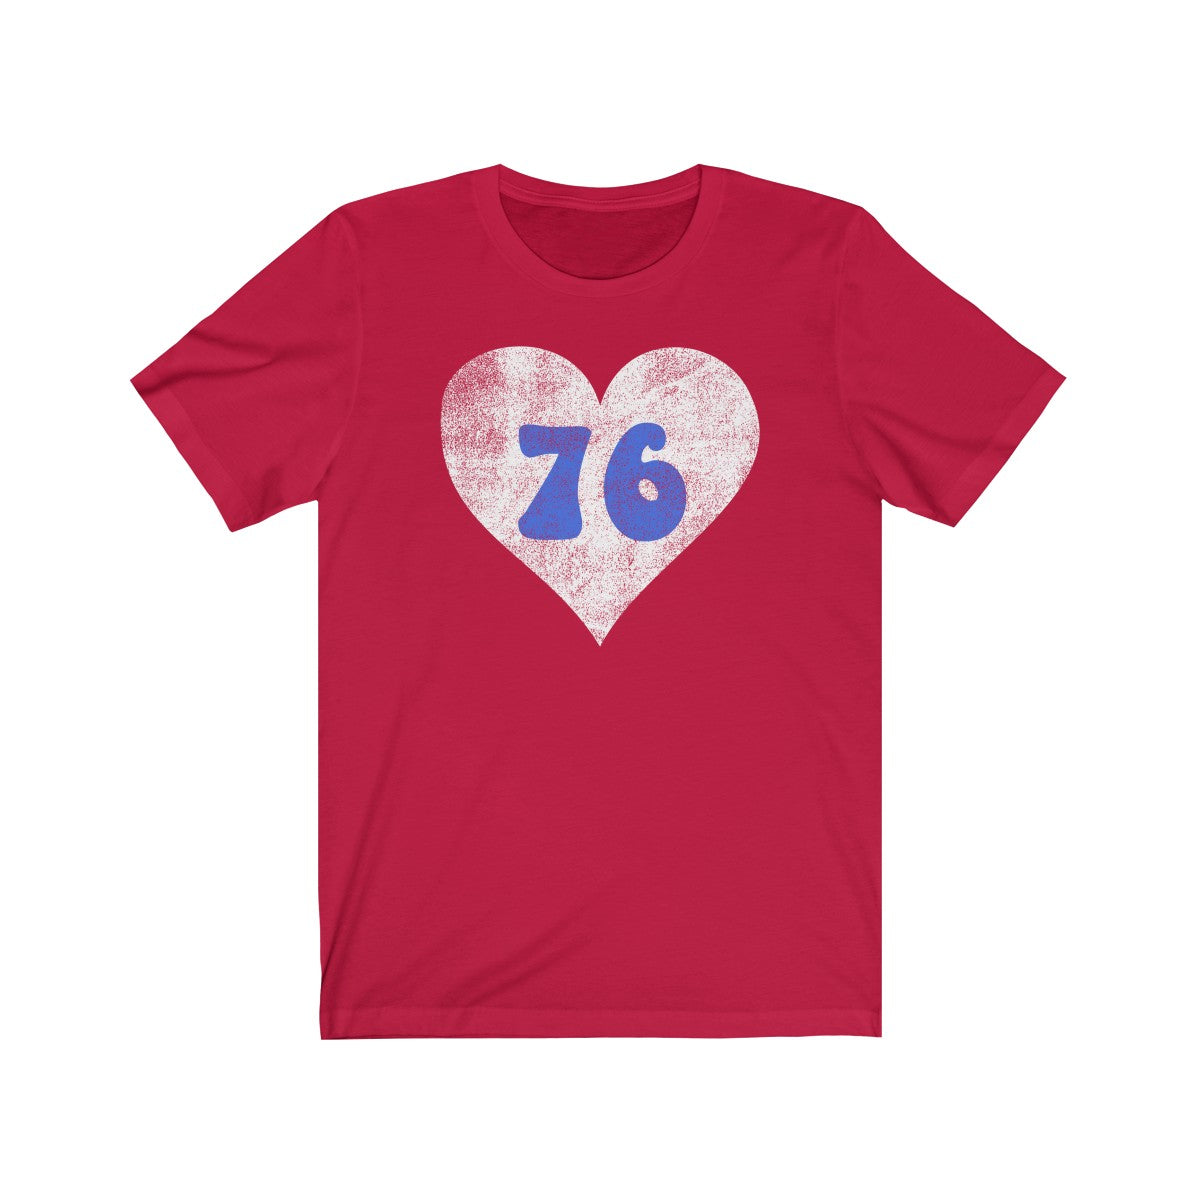 6f979c9fea9 Philly Sports Tees Tagged